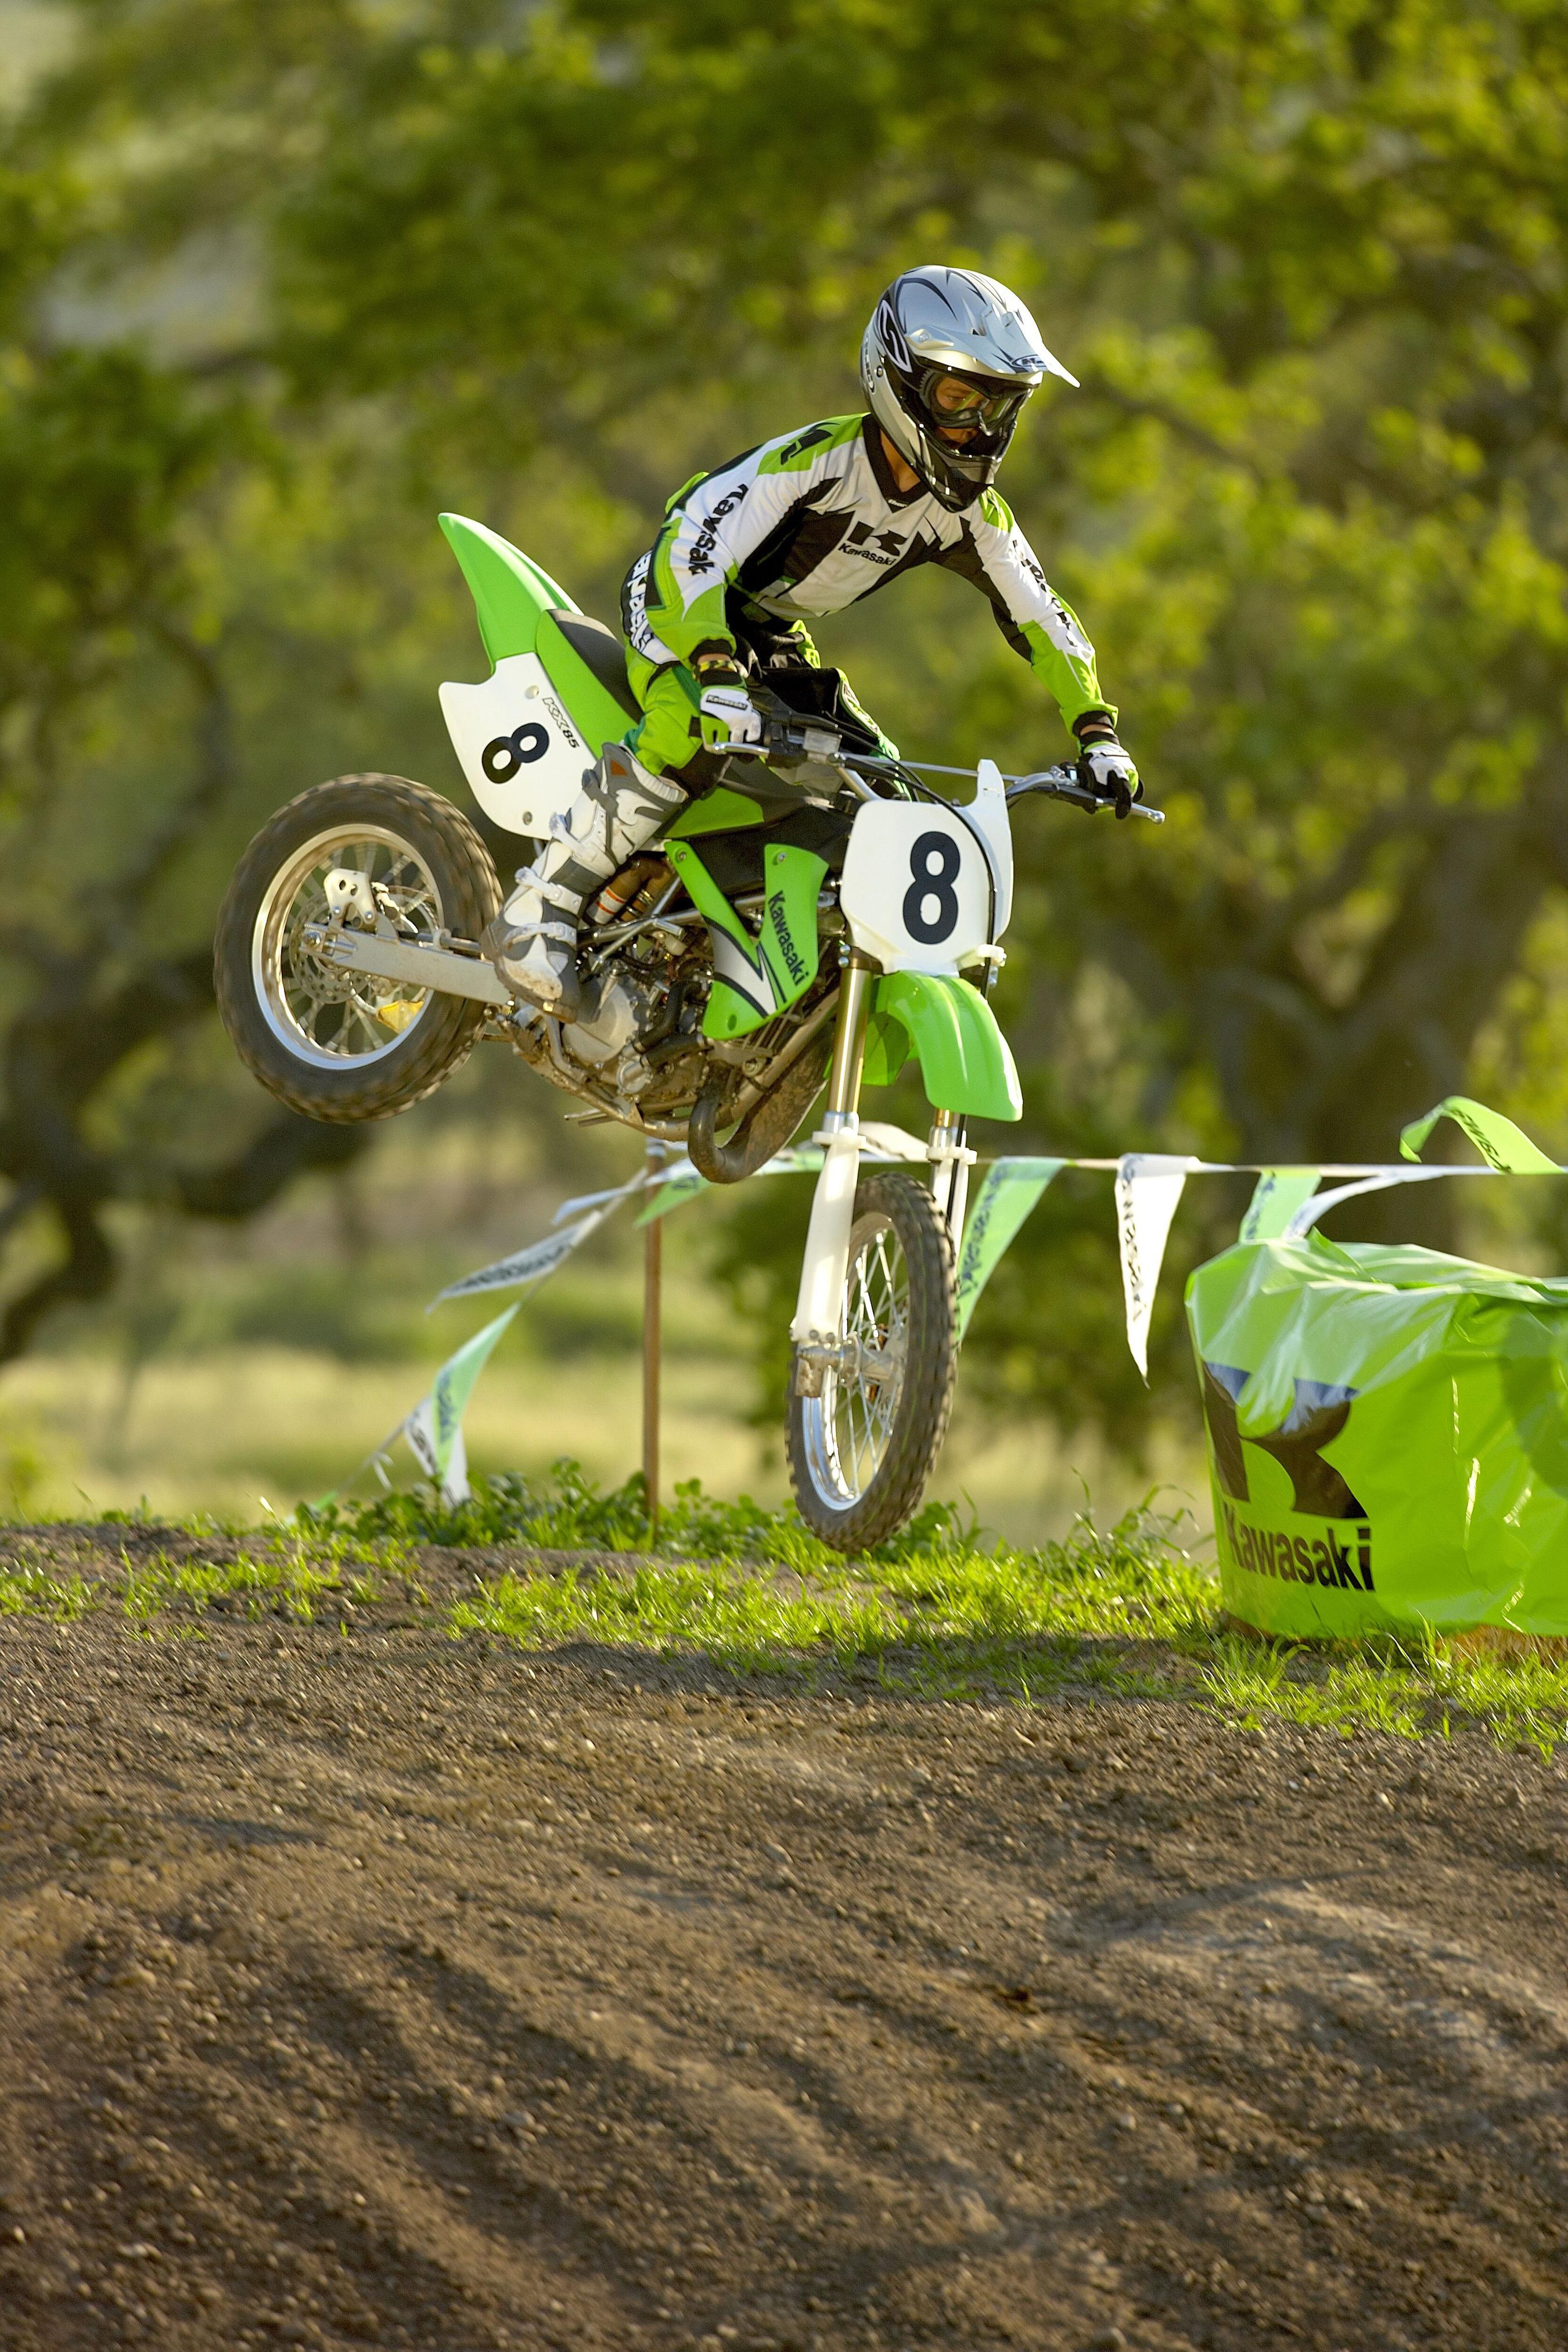 85 Best Son Hwa Min Images On Pinterest: 2007 Kawasaki KX85 Gallery 92517